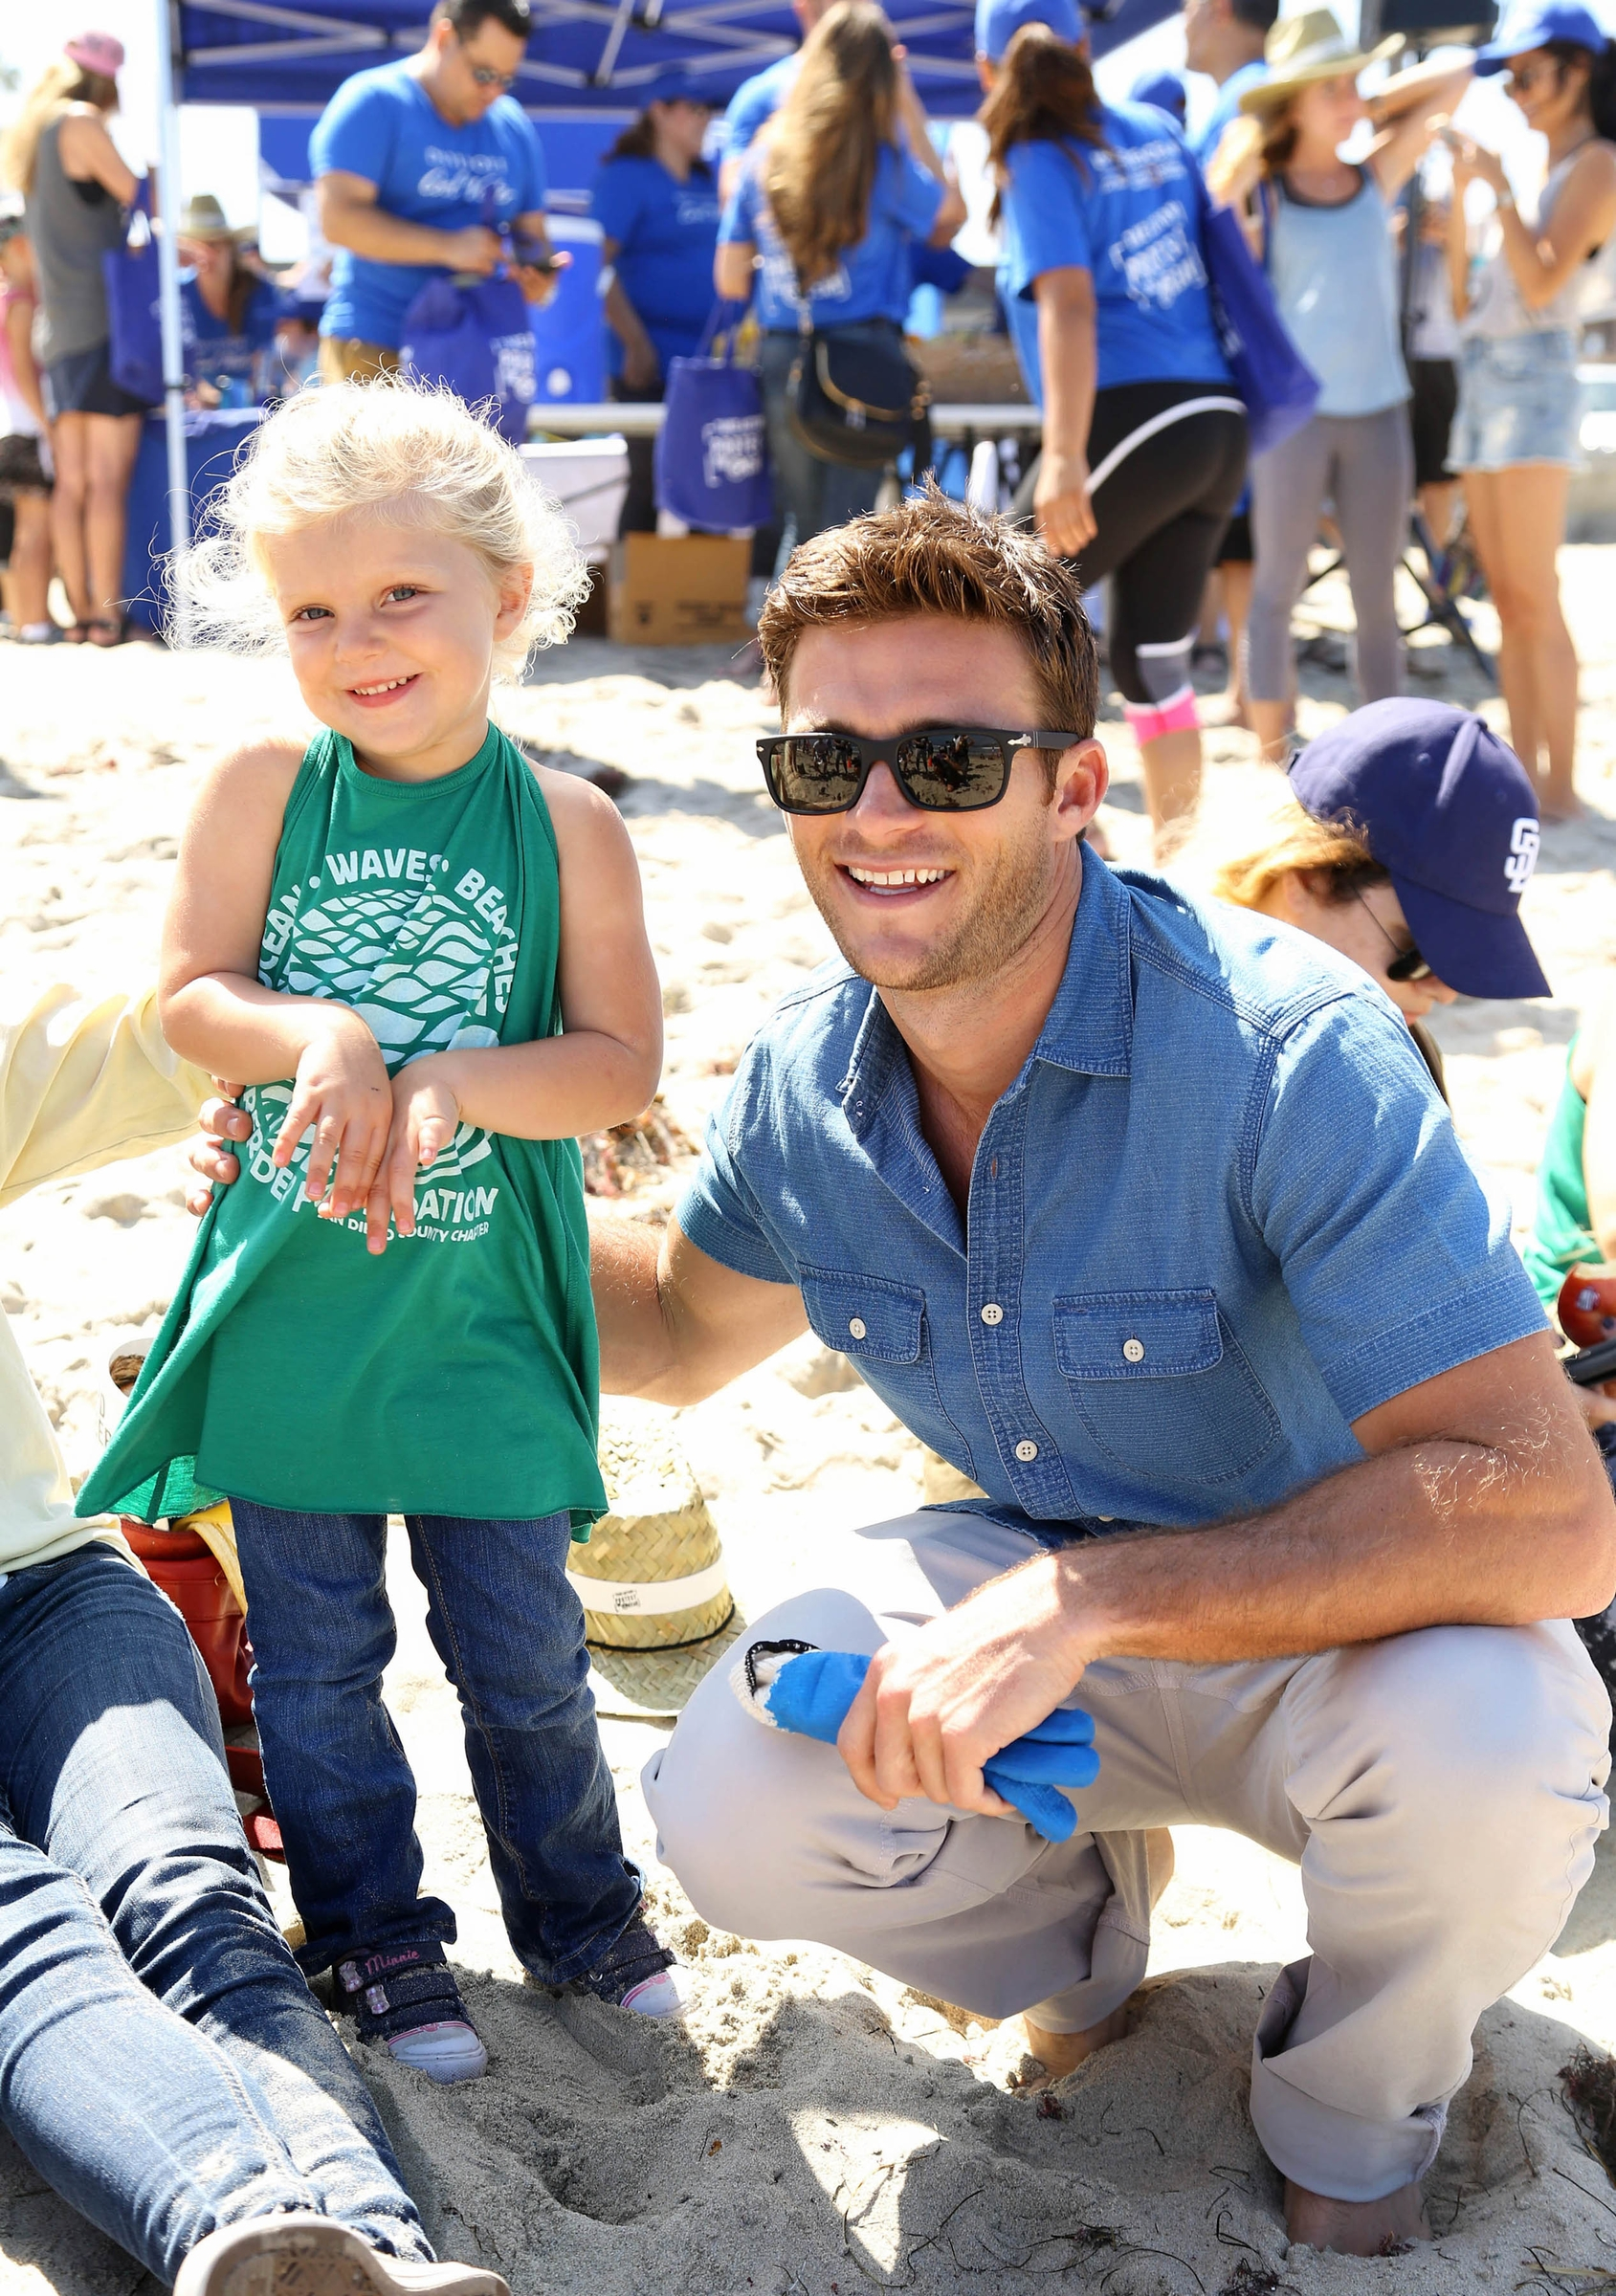 New York City -  July 10, 2016:  Looking good while doing good, Scott Eastwood, the face of Davidoff Cool Water, supports the brand's #LoveTheOcean campaign at a beach cleaunp in Ocean Beach.  -  PICTURED: Scott Eastwood with fan - PHOTO BY: Sara Jaye Weiss/StartraksPhoto.com